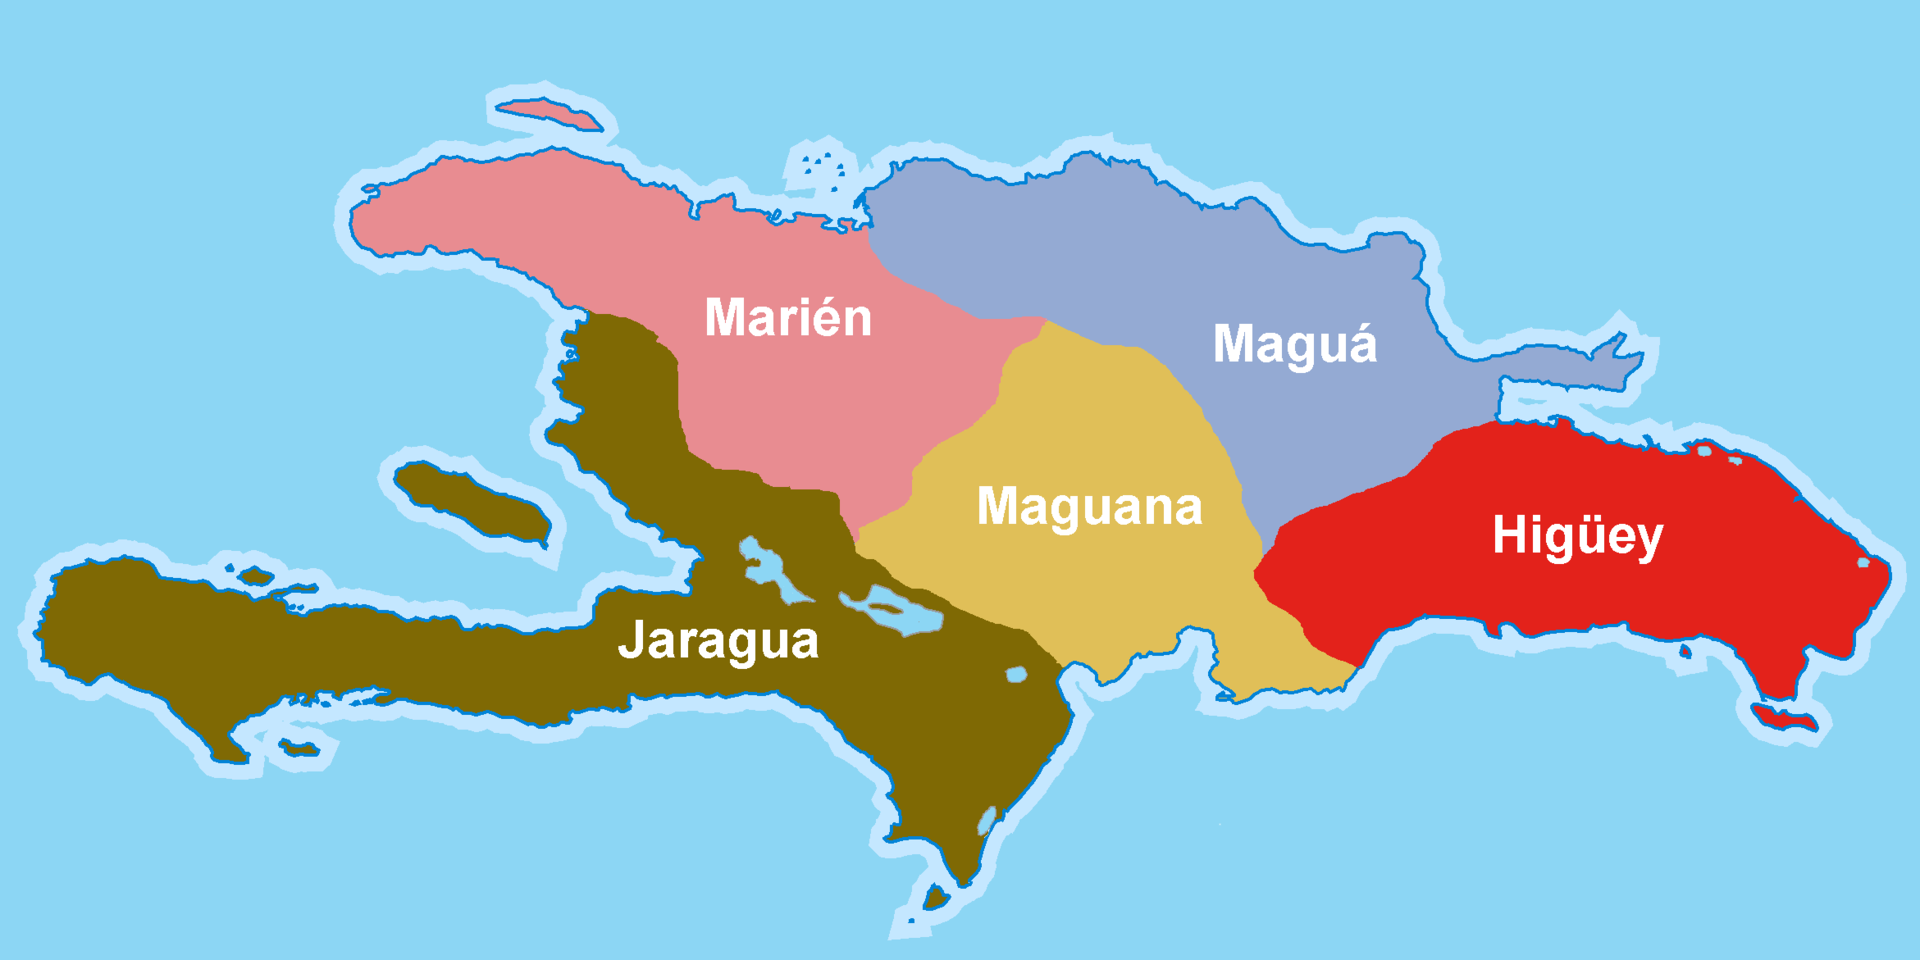 The island of Quisqueya set in caciquat in the times when the natives people were the inhabitants of the land.